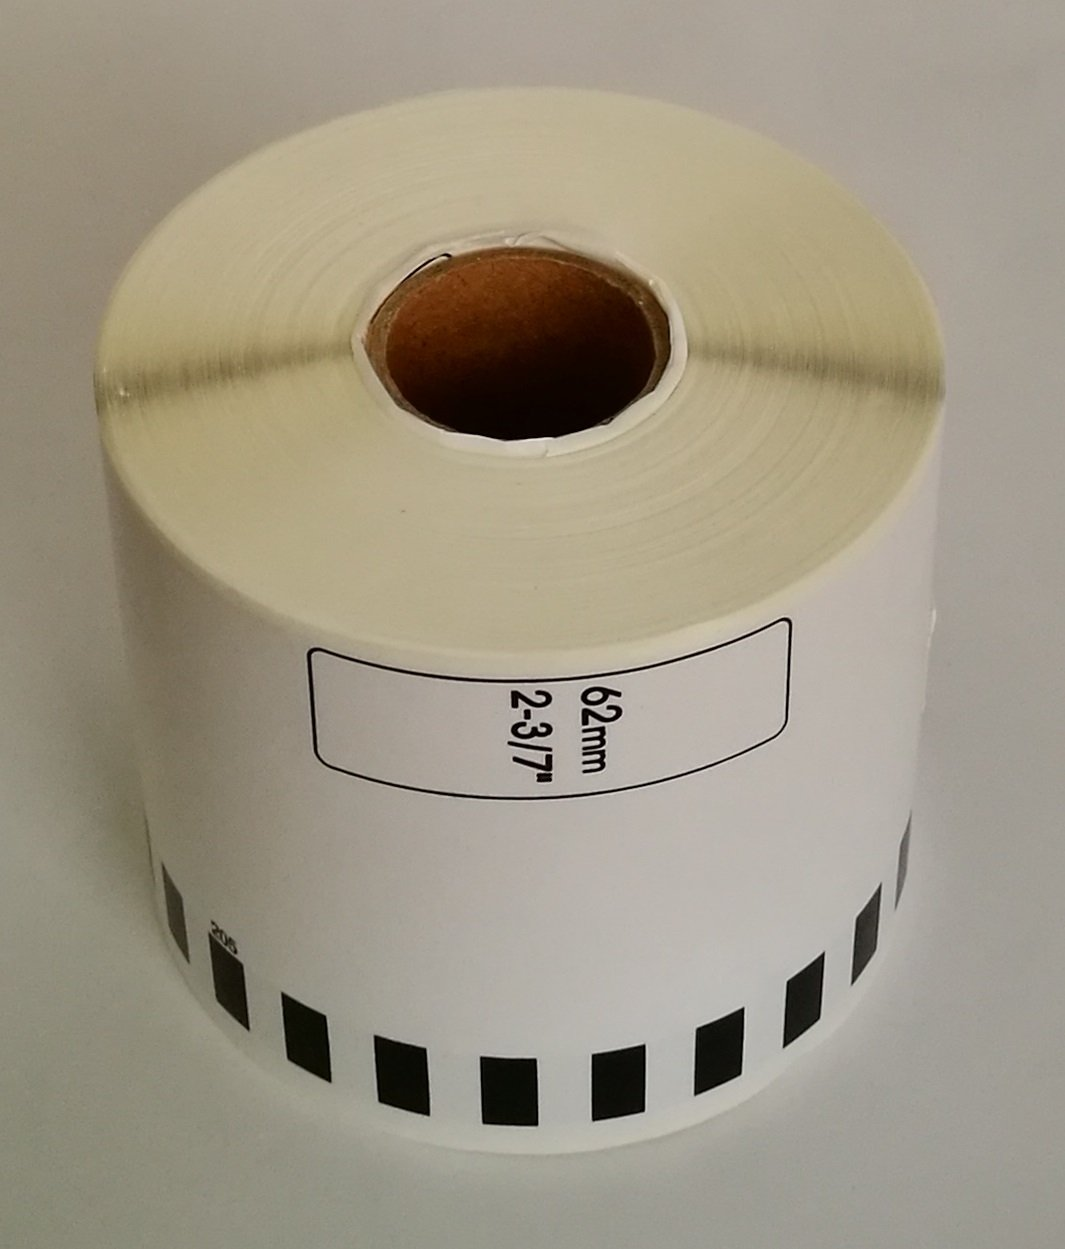 Brother-Compatible DK4205 DK-4205 Removable Continuous Paper Labels (4 rolls)